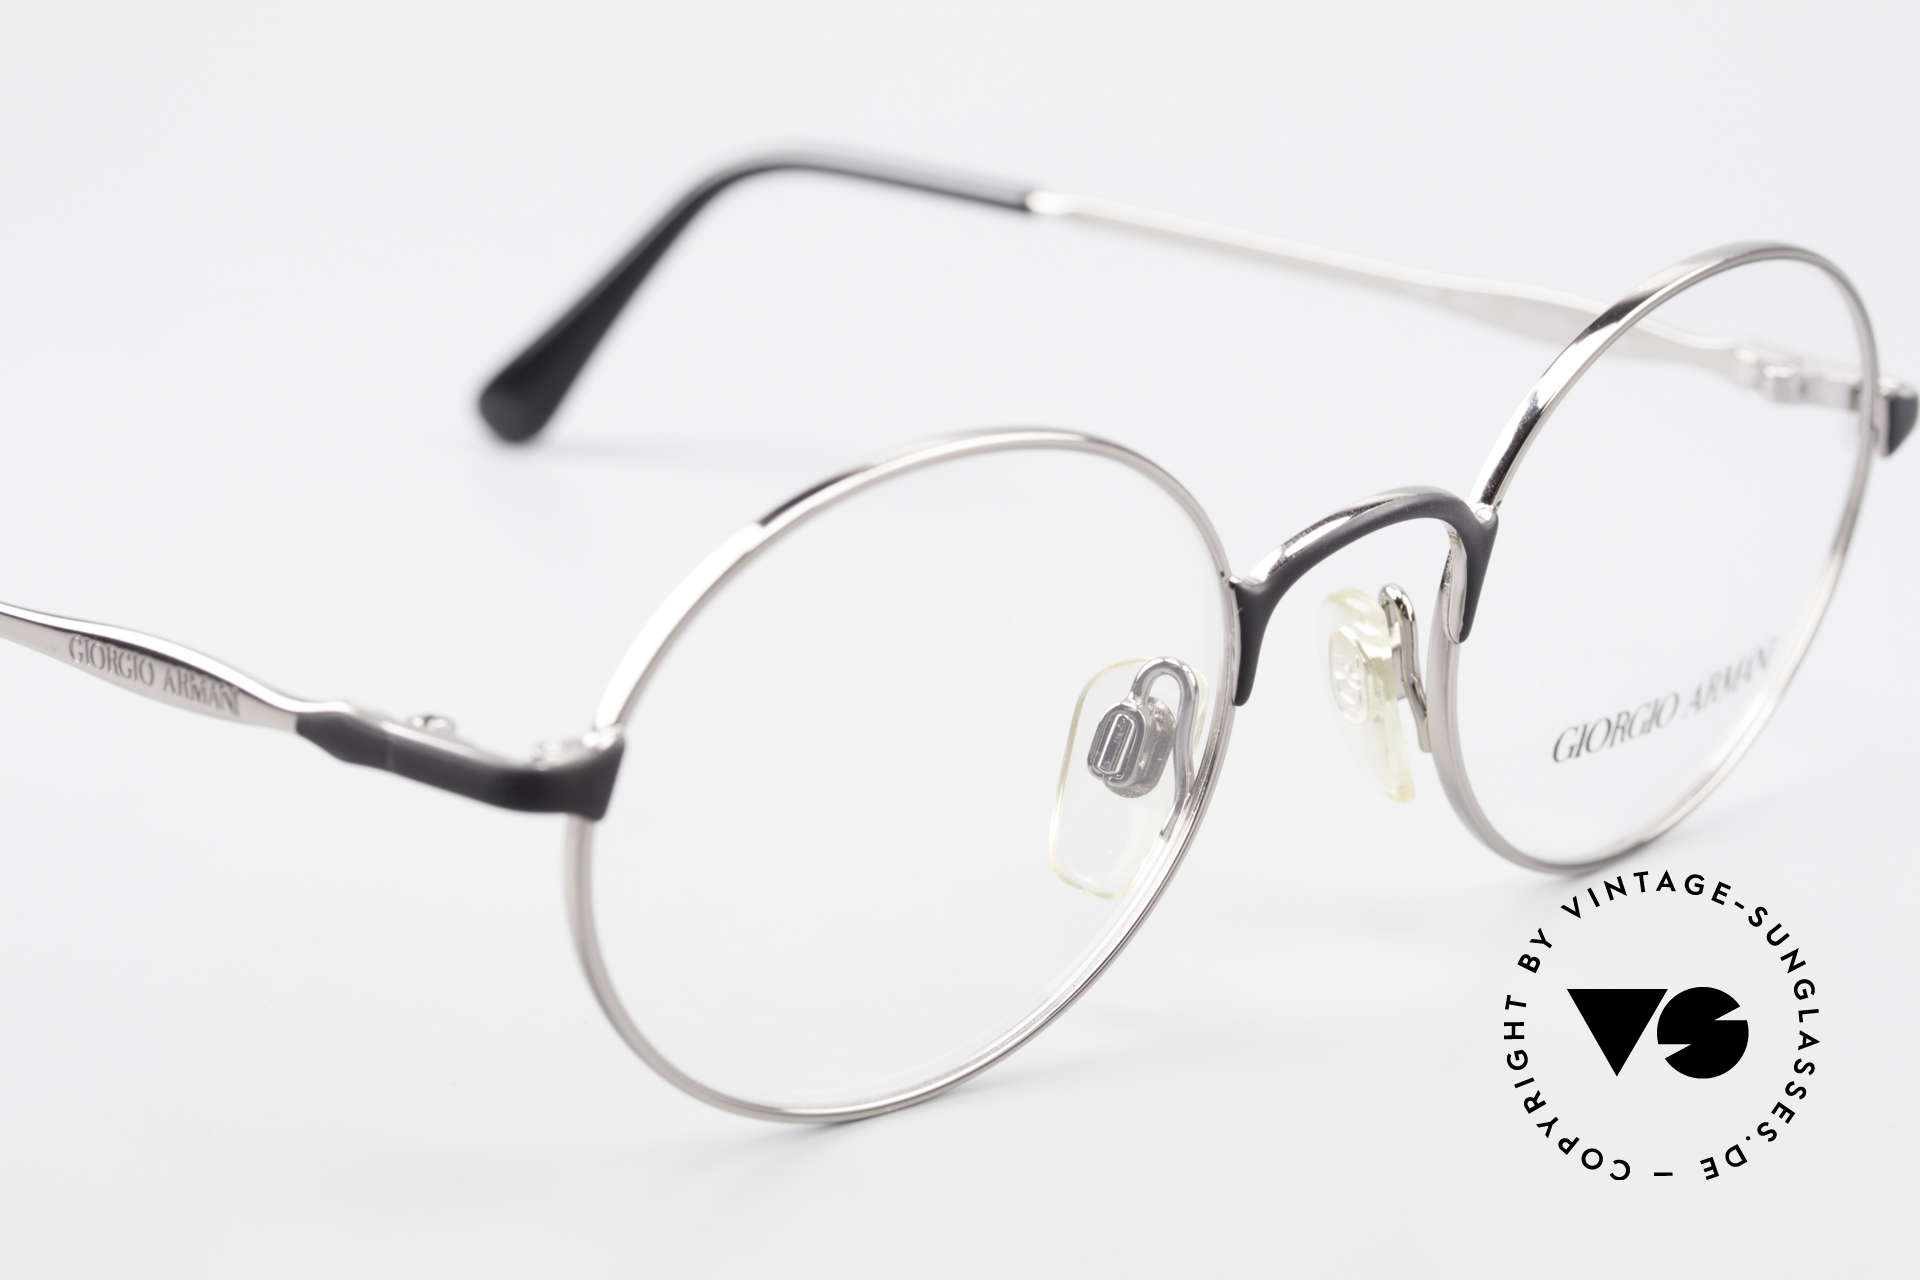 Giorgio Armani 243 Round Oval Glasses 90s Small, NO recent collection, but a 25 years old ORIGINAL, Made for Men and Women